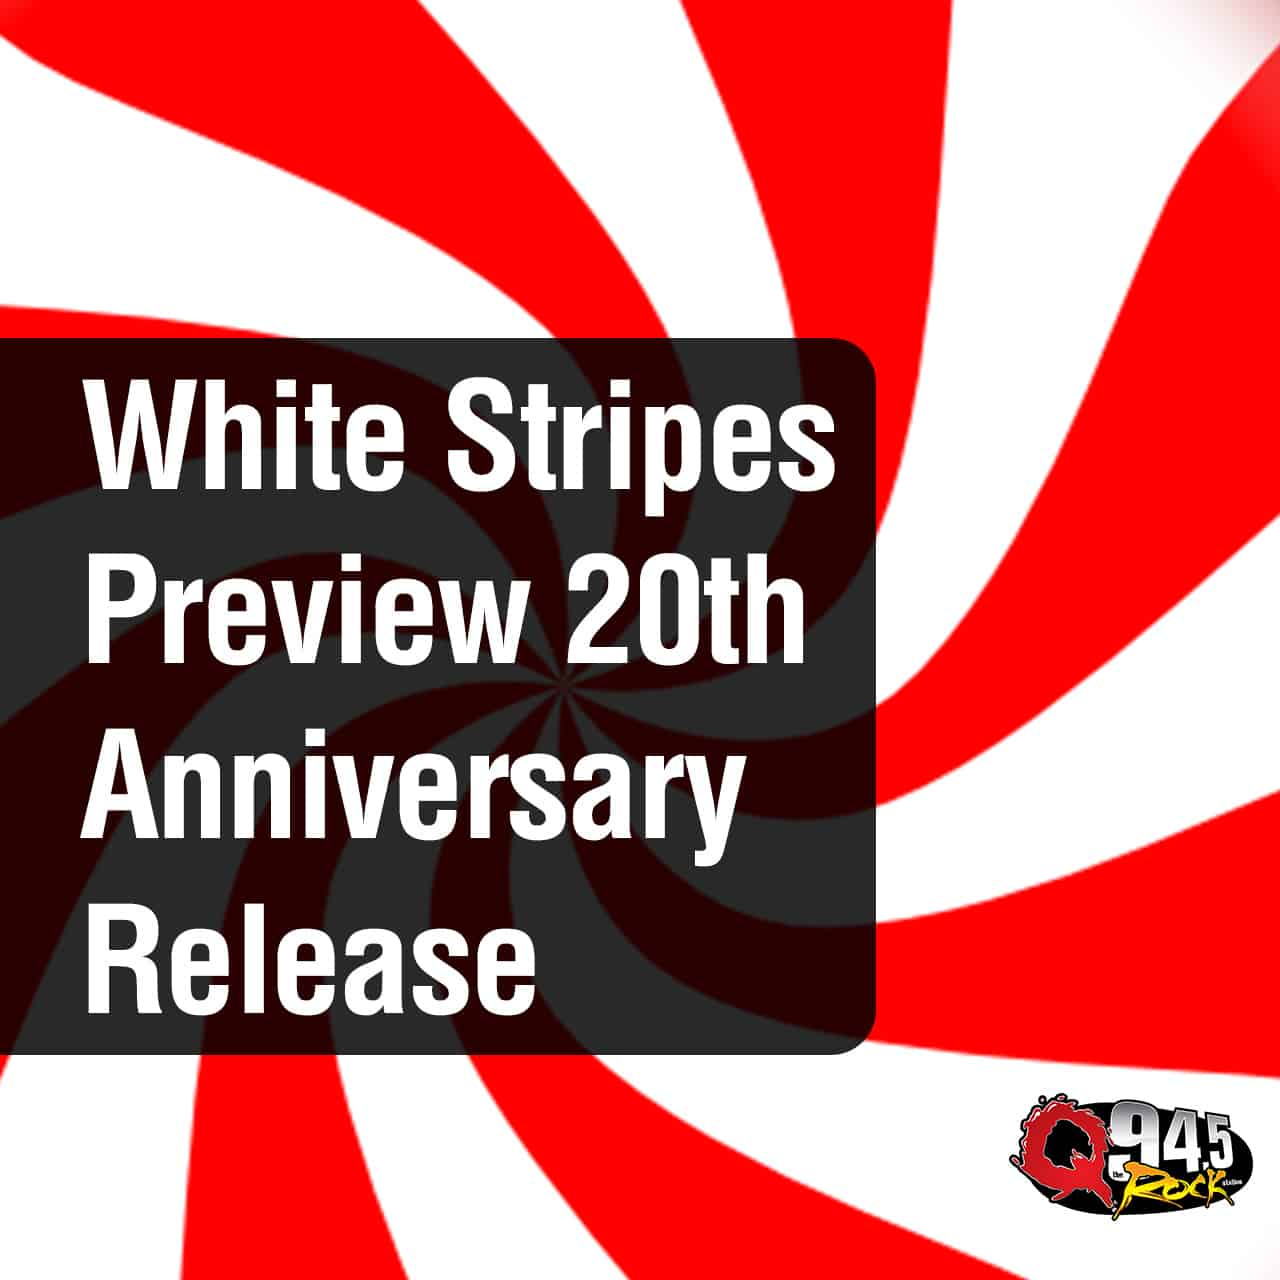 The White Stripes Preview 20th Anniversary Release